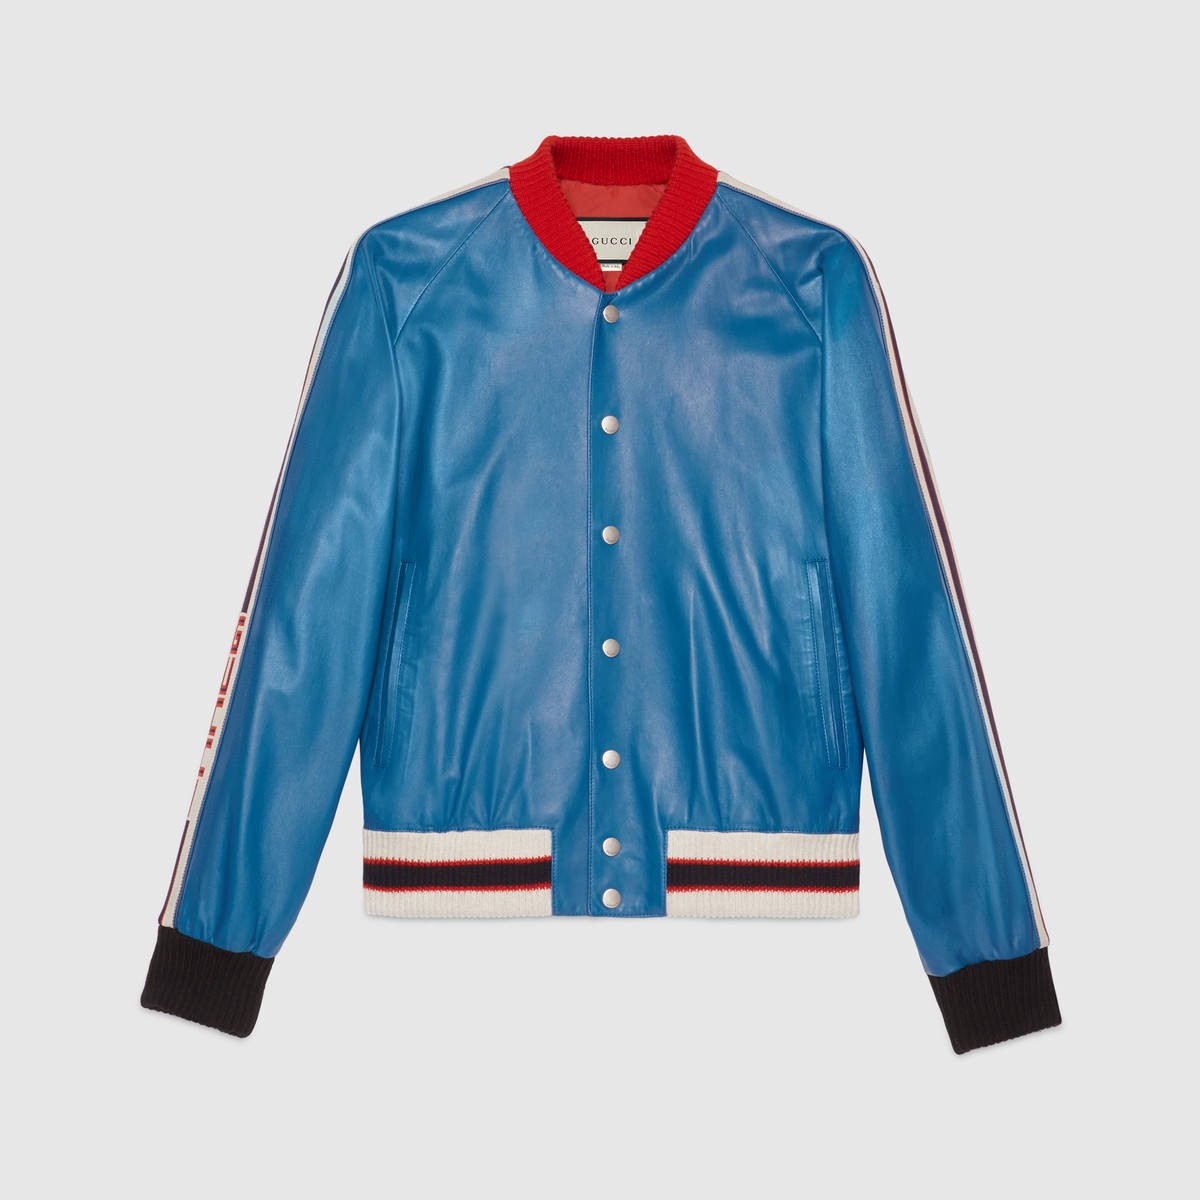 GUCCI Leather Bomber Jacket With Appliqués - Blue Leather in Blue Leather